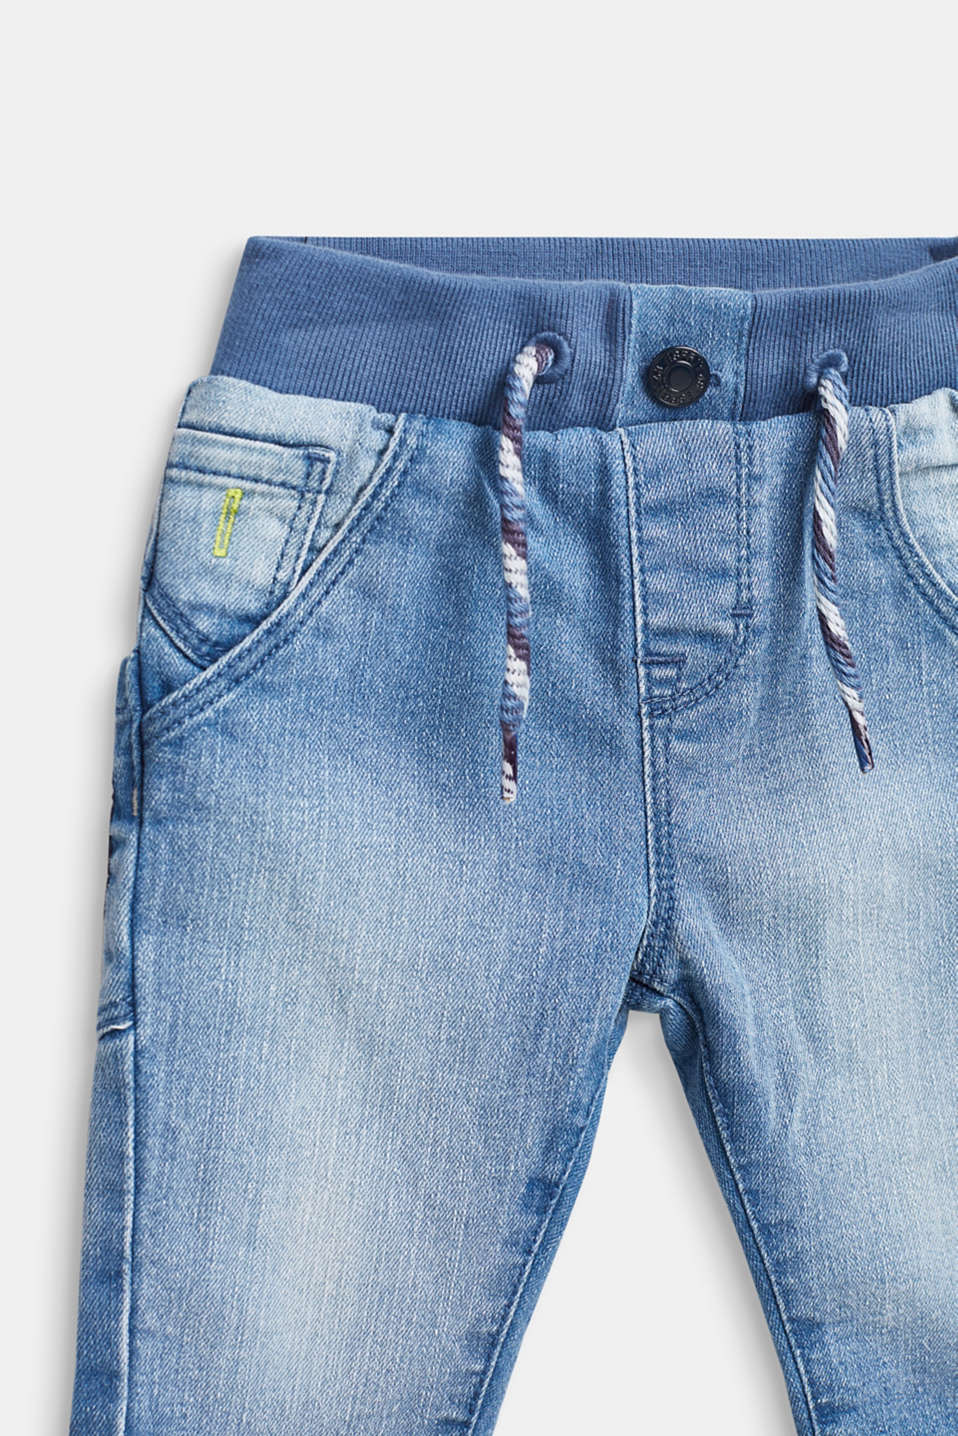 Jeans with a ribbed waistband and jersey lining, LCBLUE LIGHT WAS, detail image number 3